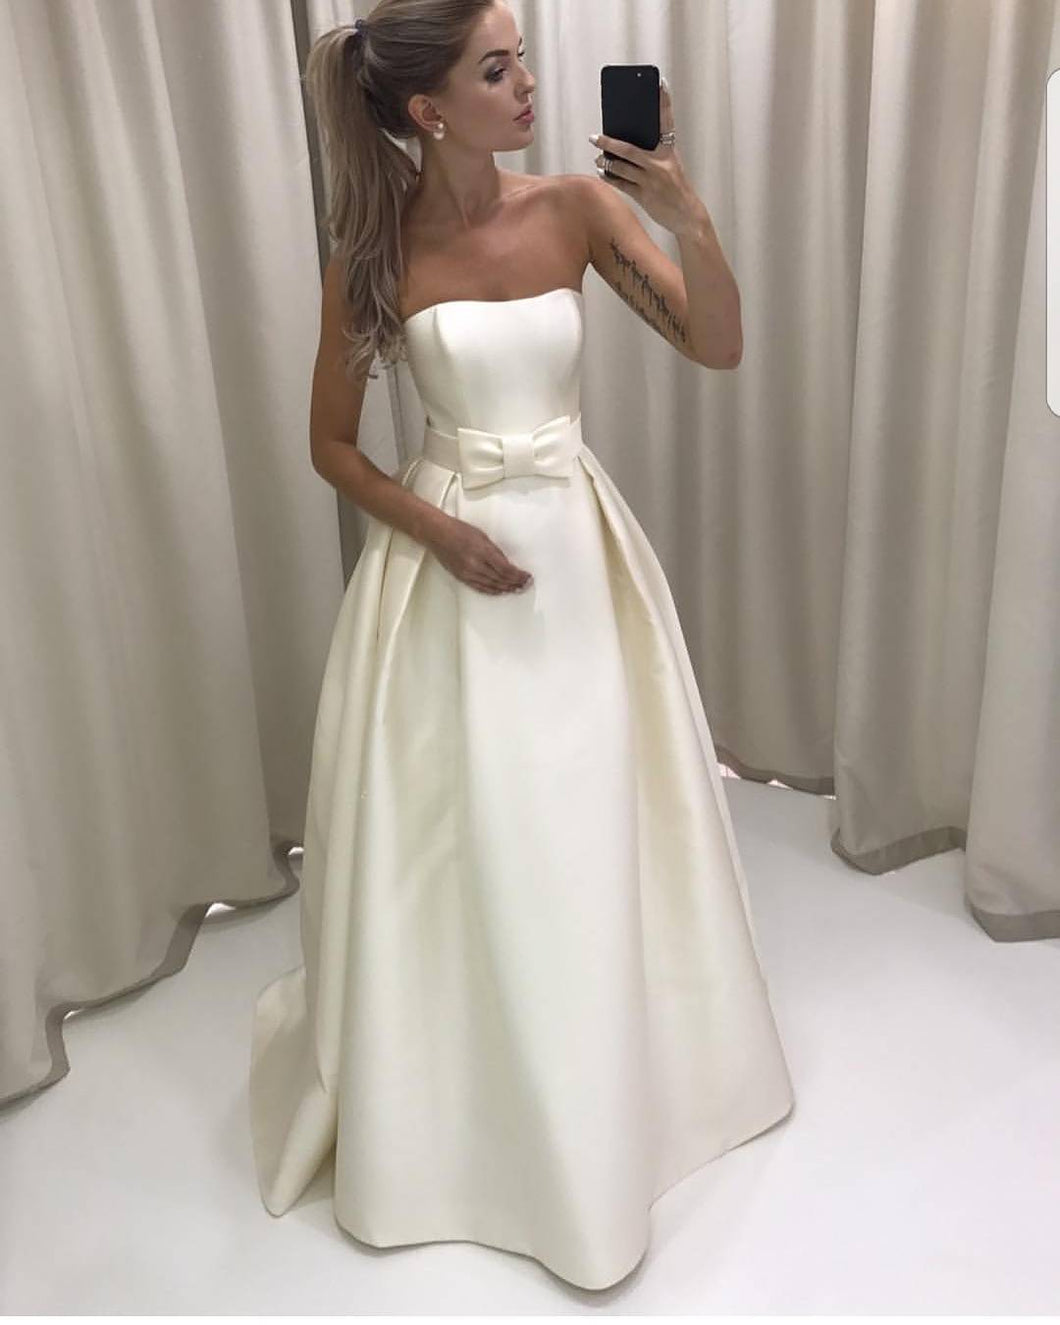 Awesome Simple Strapless Wedding Dress Ivory Satin Bridal Gown With A Bow